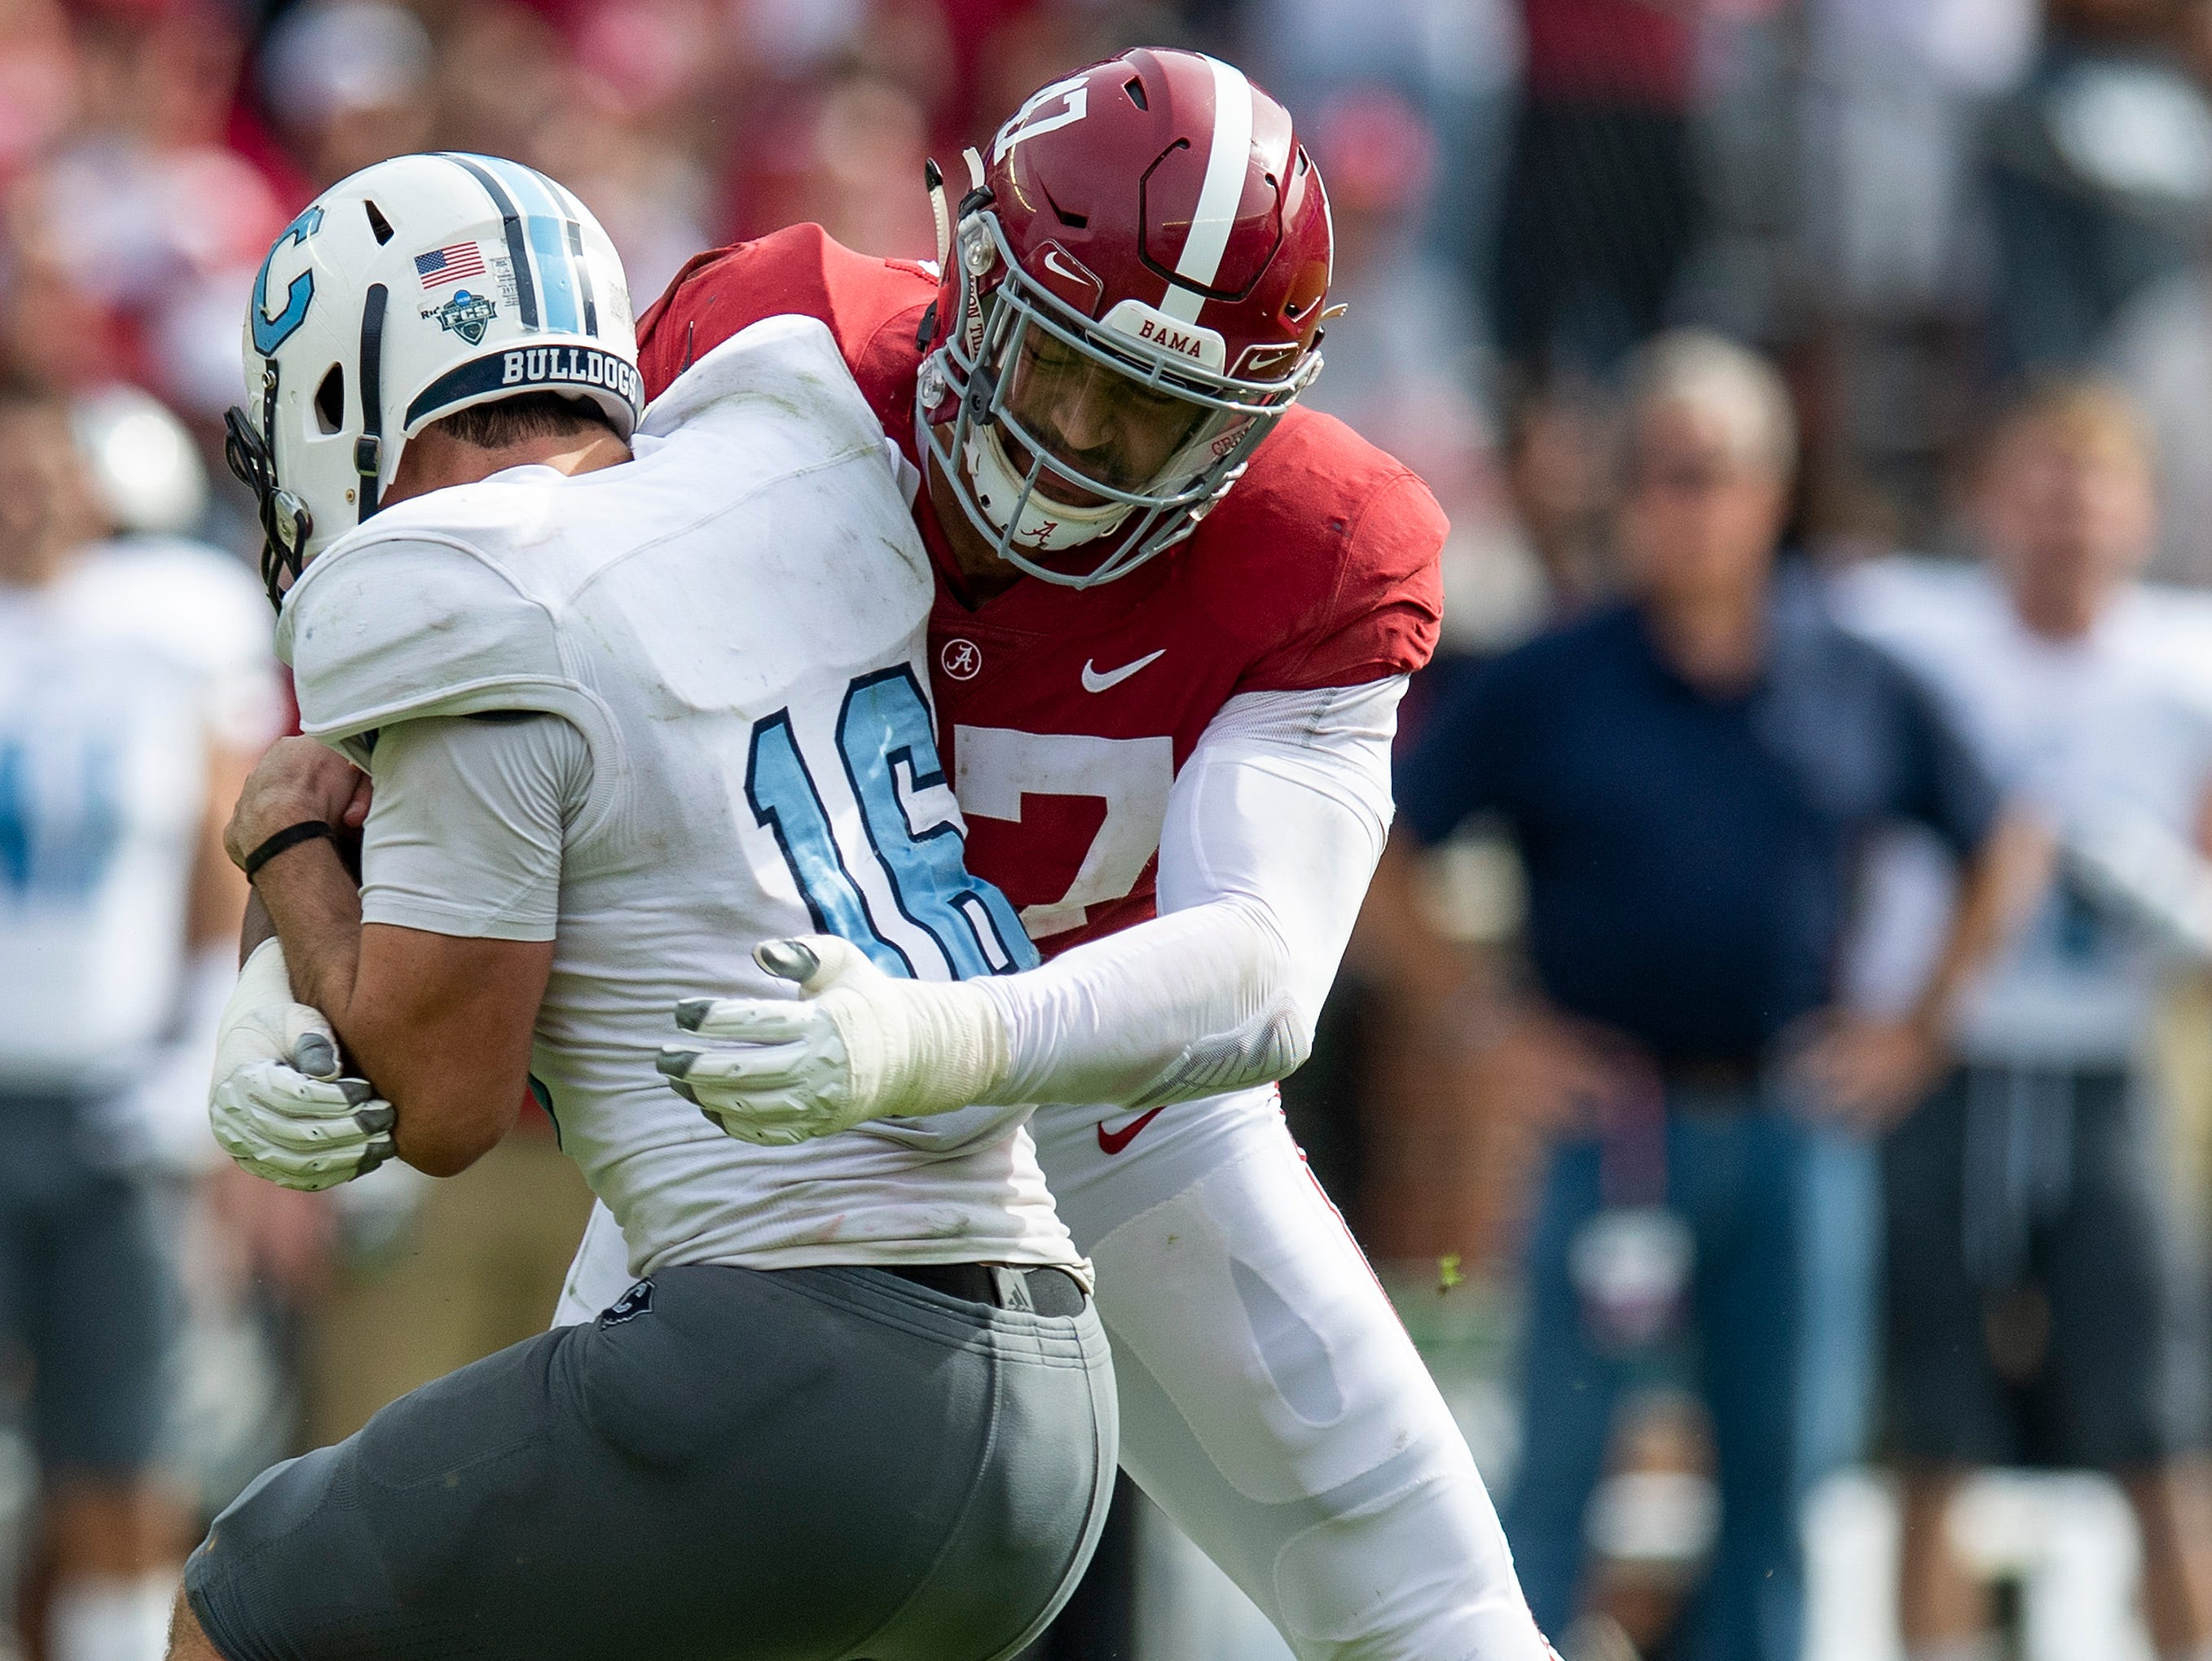 Alabama linebacker Christian Miller (47) wraps up Citadel quarterback Brandon Rainey (16) in second half action at Bryant-Denny Stadium in Tuscaloosa, Ala., on Saturday November 17, 2018.